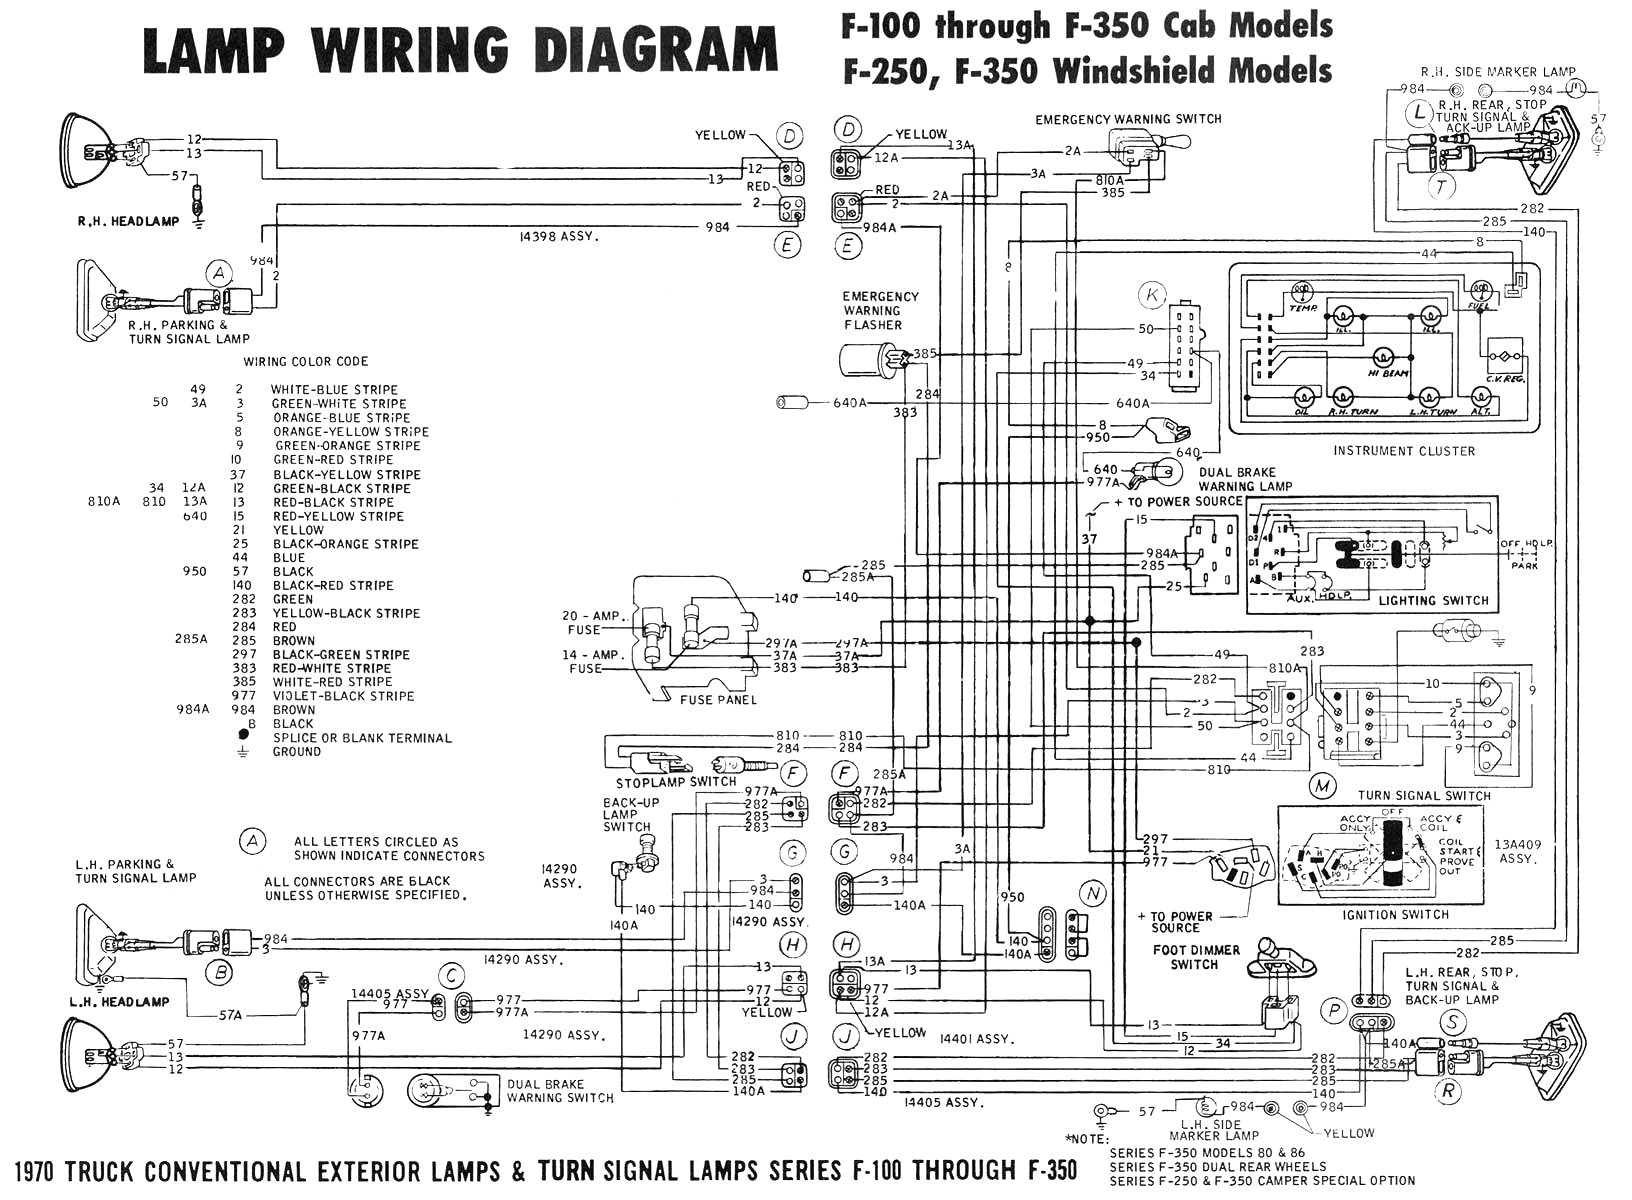 3 pin flasher relay wiring diagram wire diagram for turn signal m109 wiring diagram files of 3 pin flasher relay wiring diagram jpg